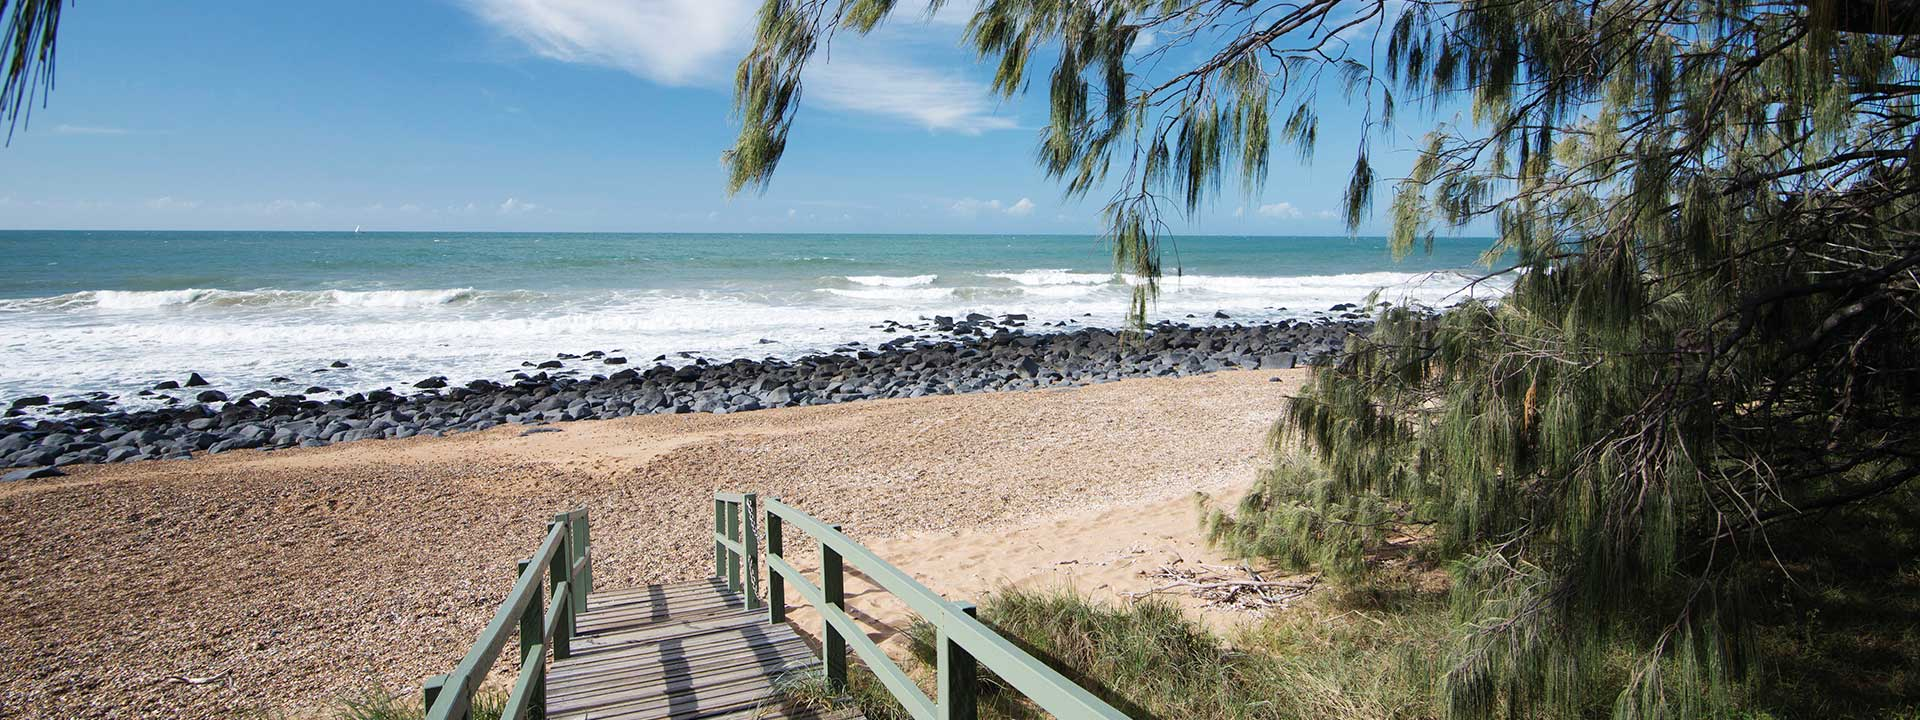 Enjoy the seclusion of Mon Repos National Park in Bundaberg